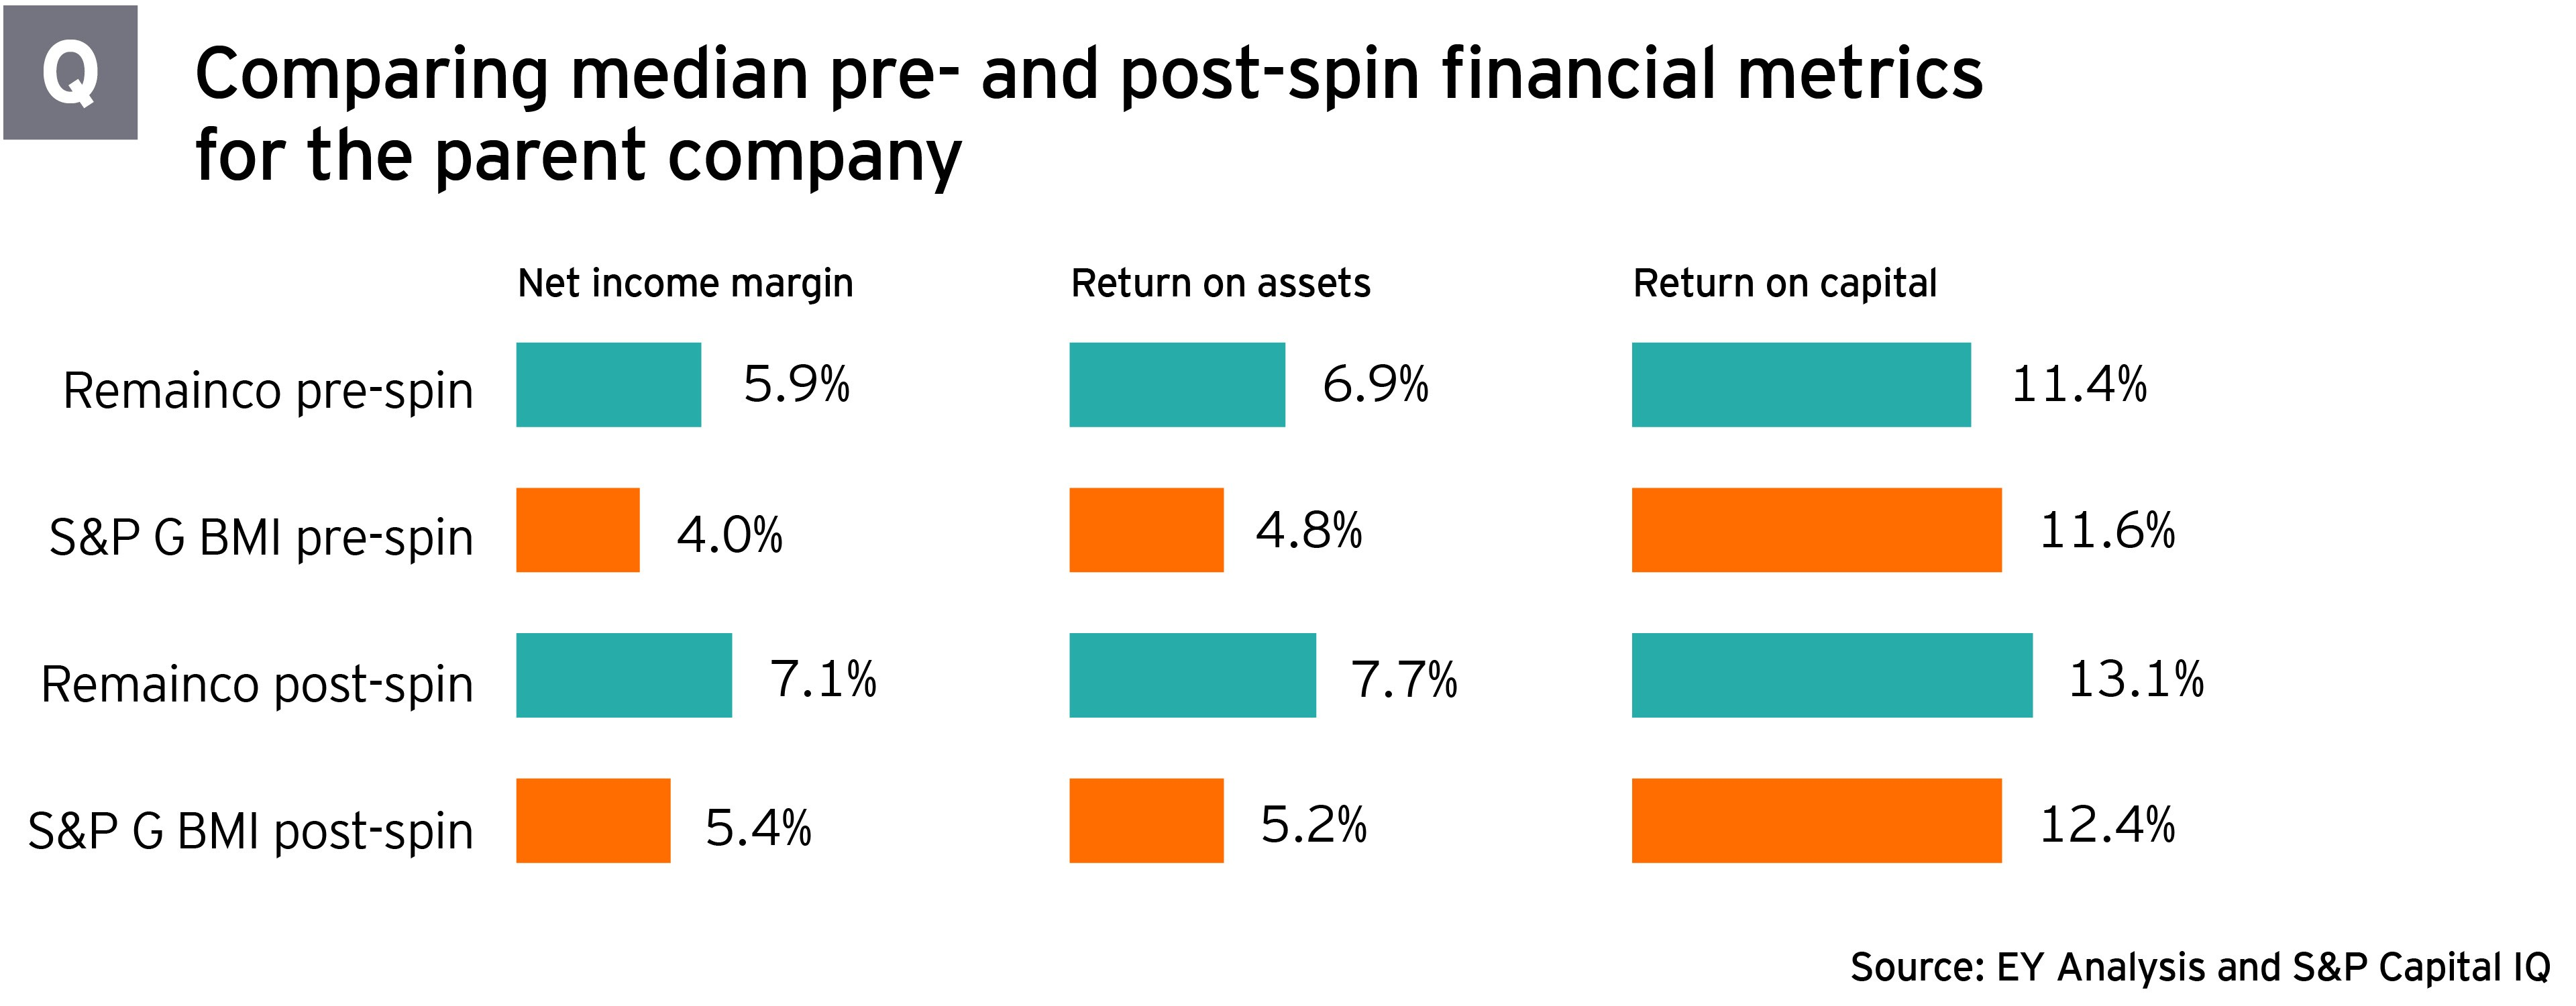 Comparing median pre and post-spin financial metrics for the parent company